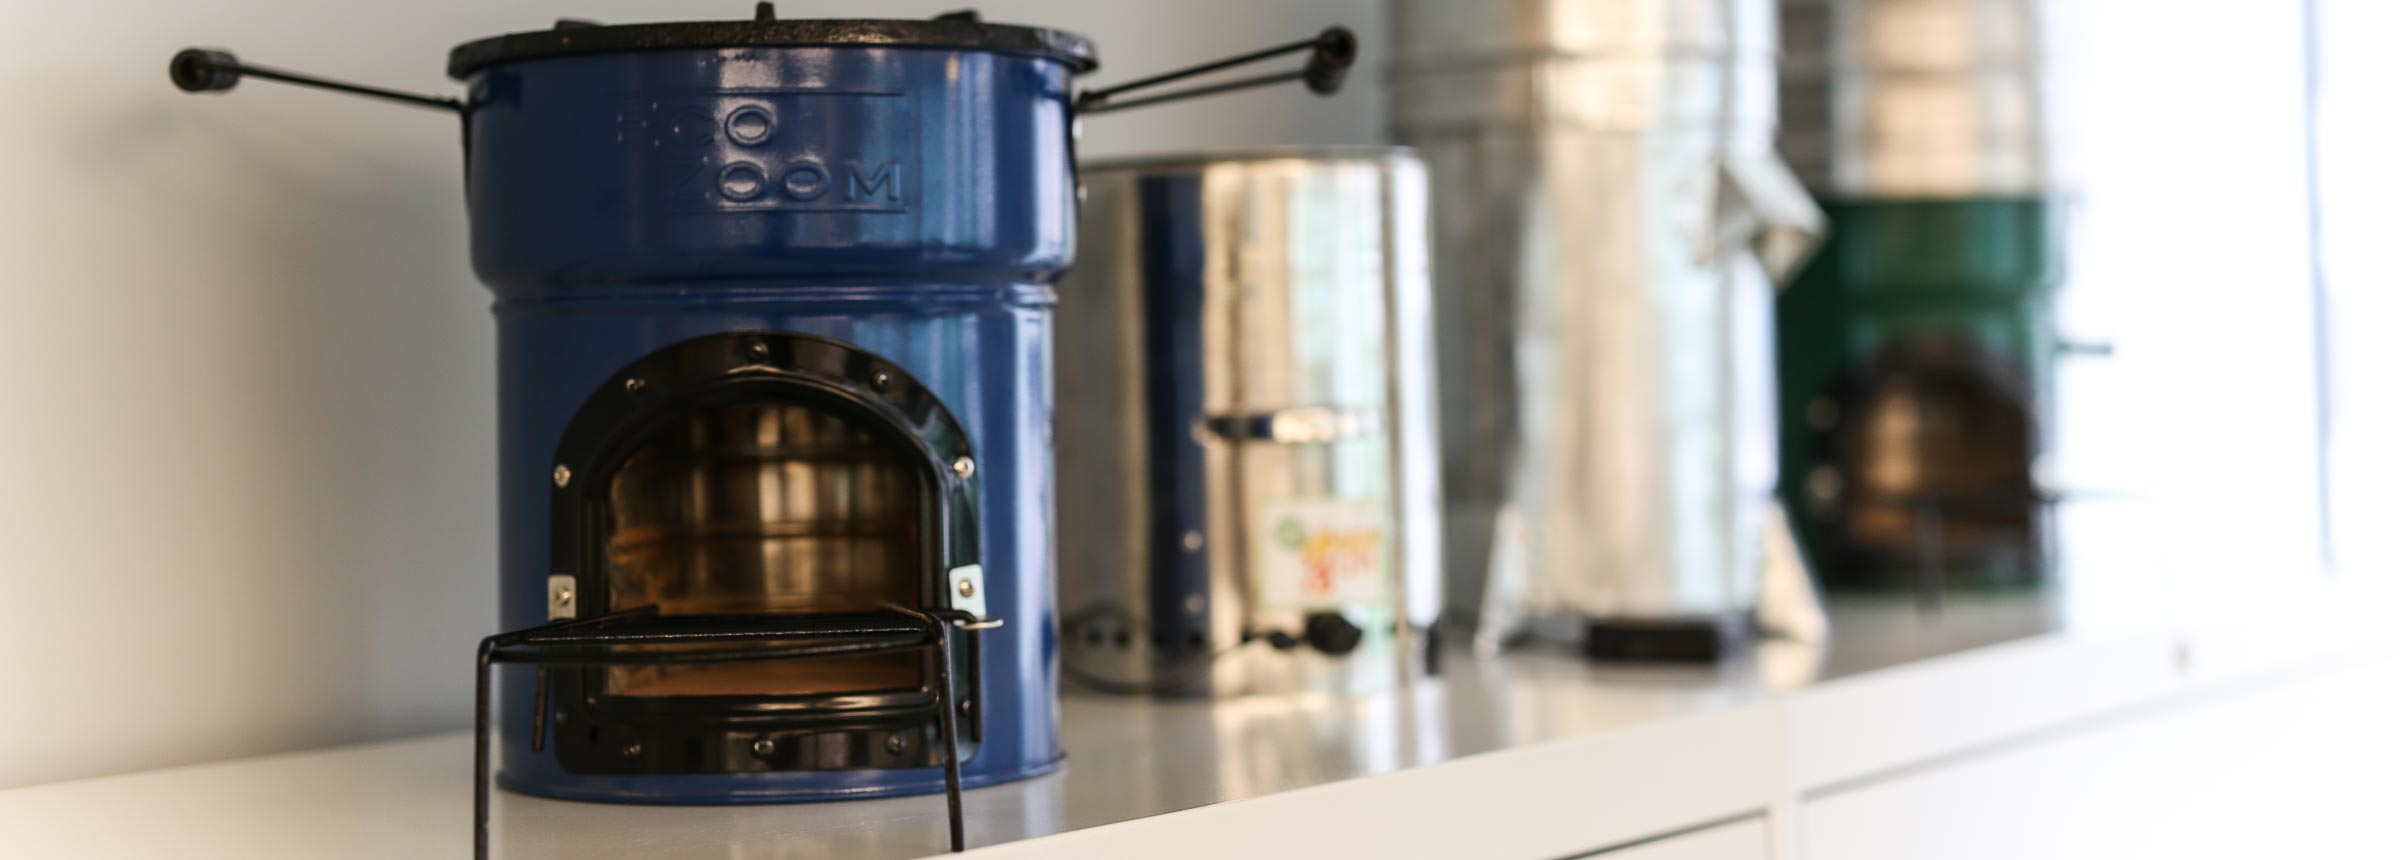 Clea cookstoves